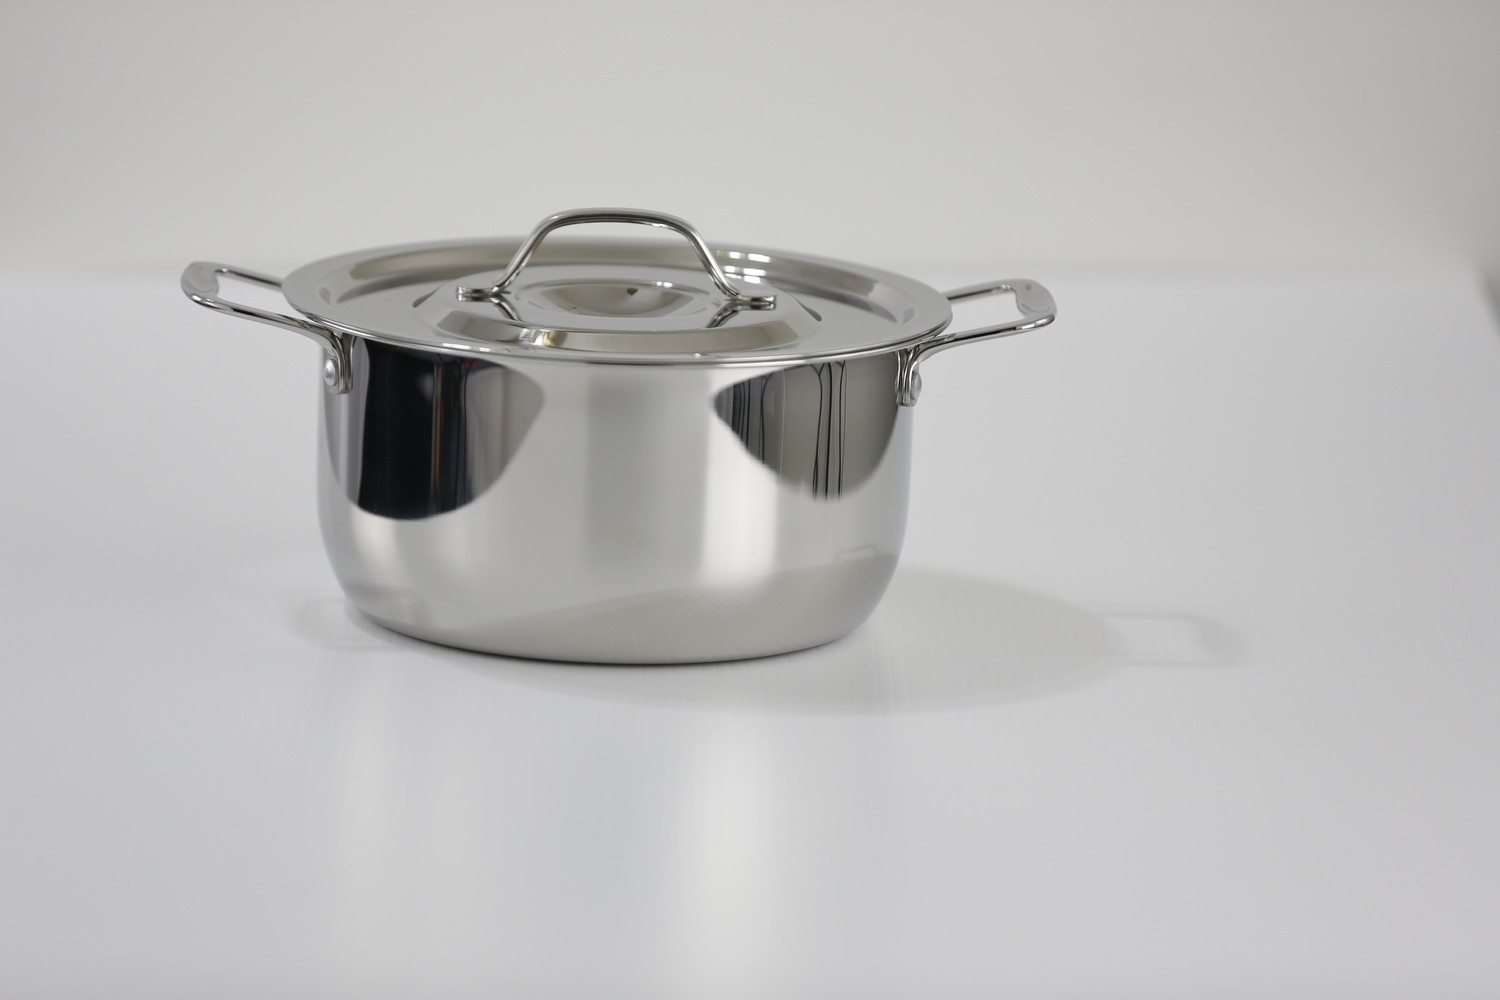 SS1 - 2.54 Qt. Stainless Steel Sauce Pot with Stainless Steel Cover